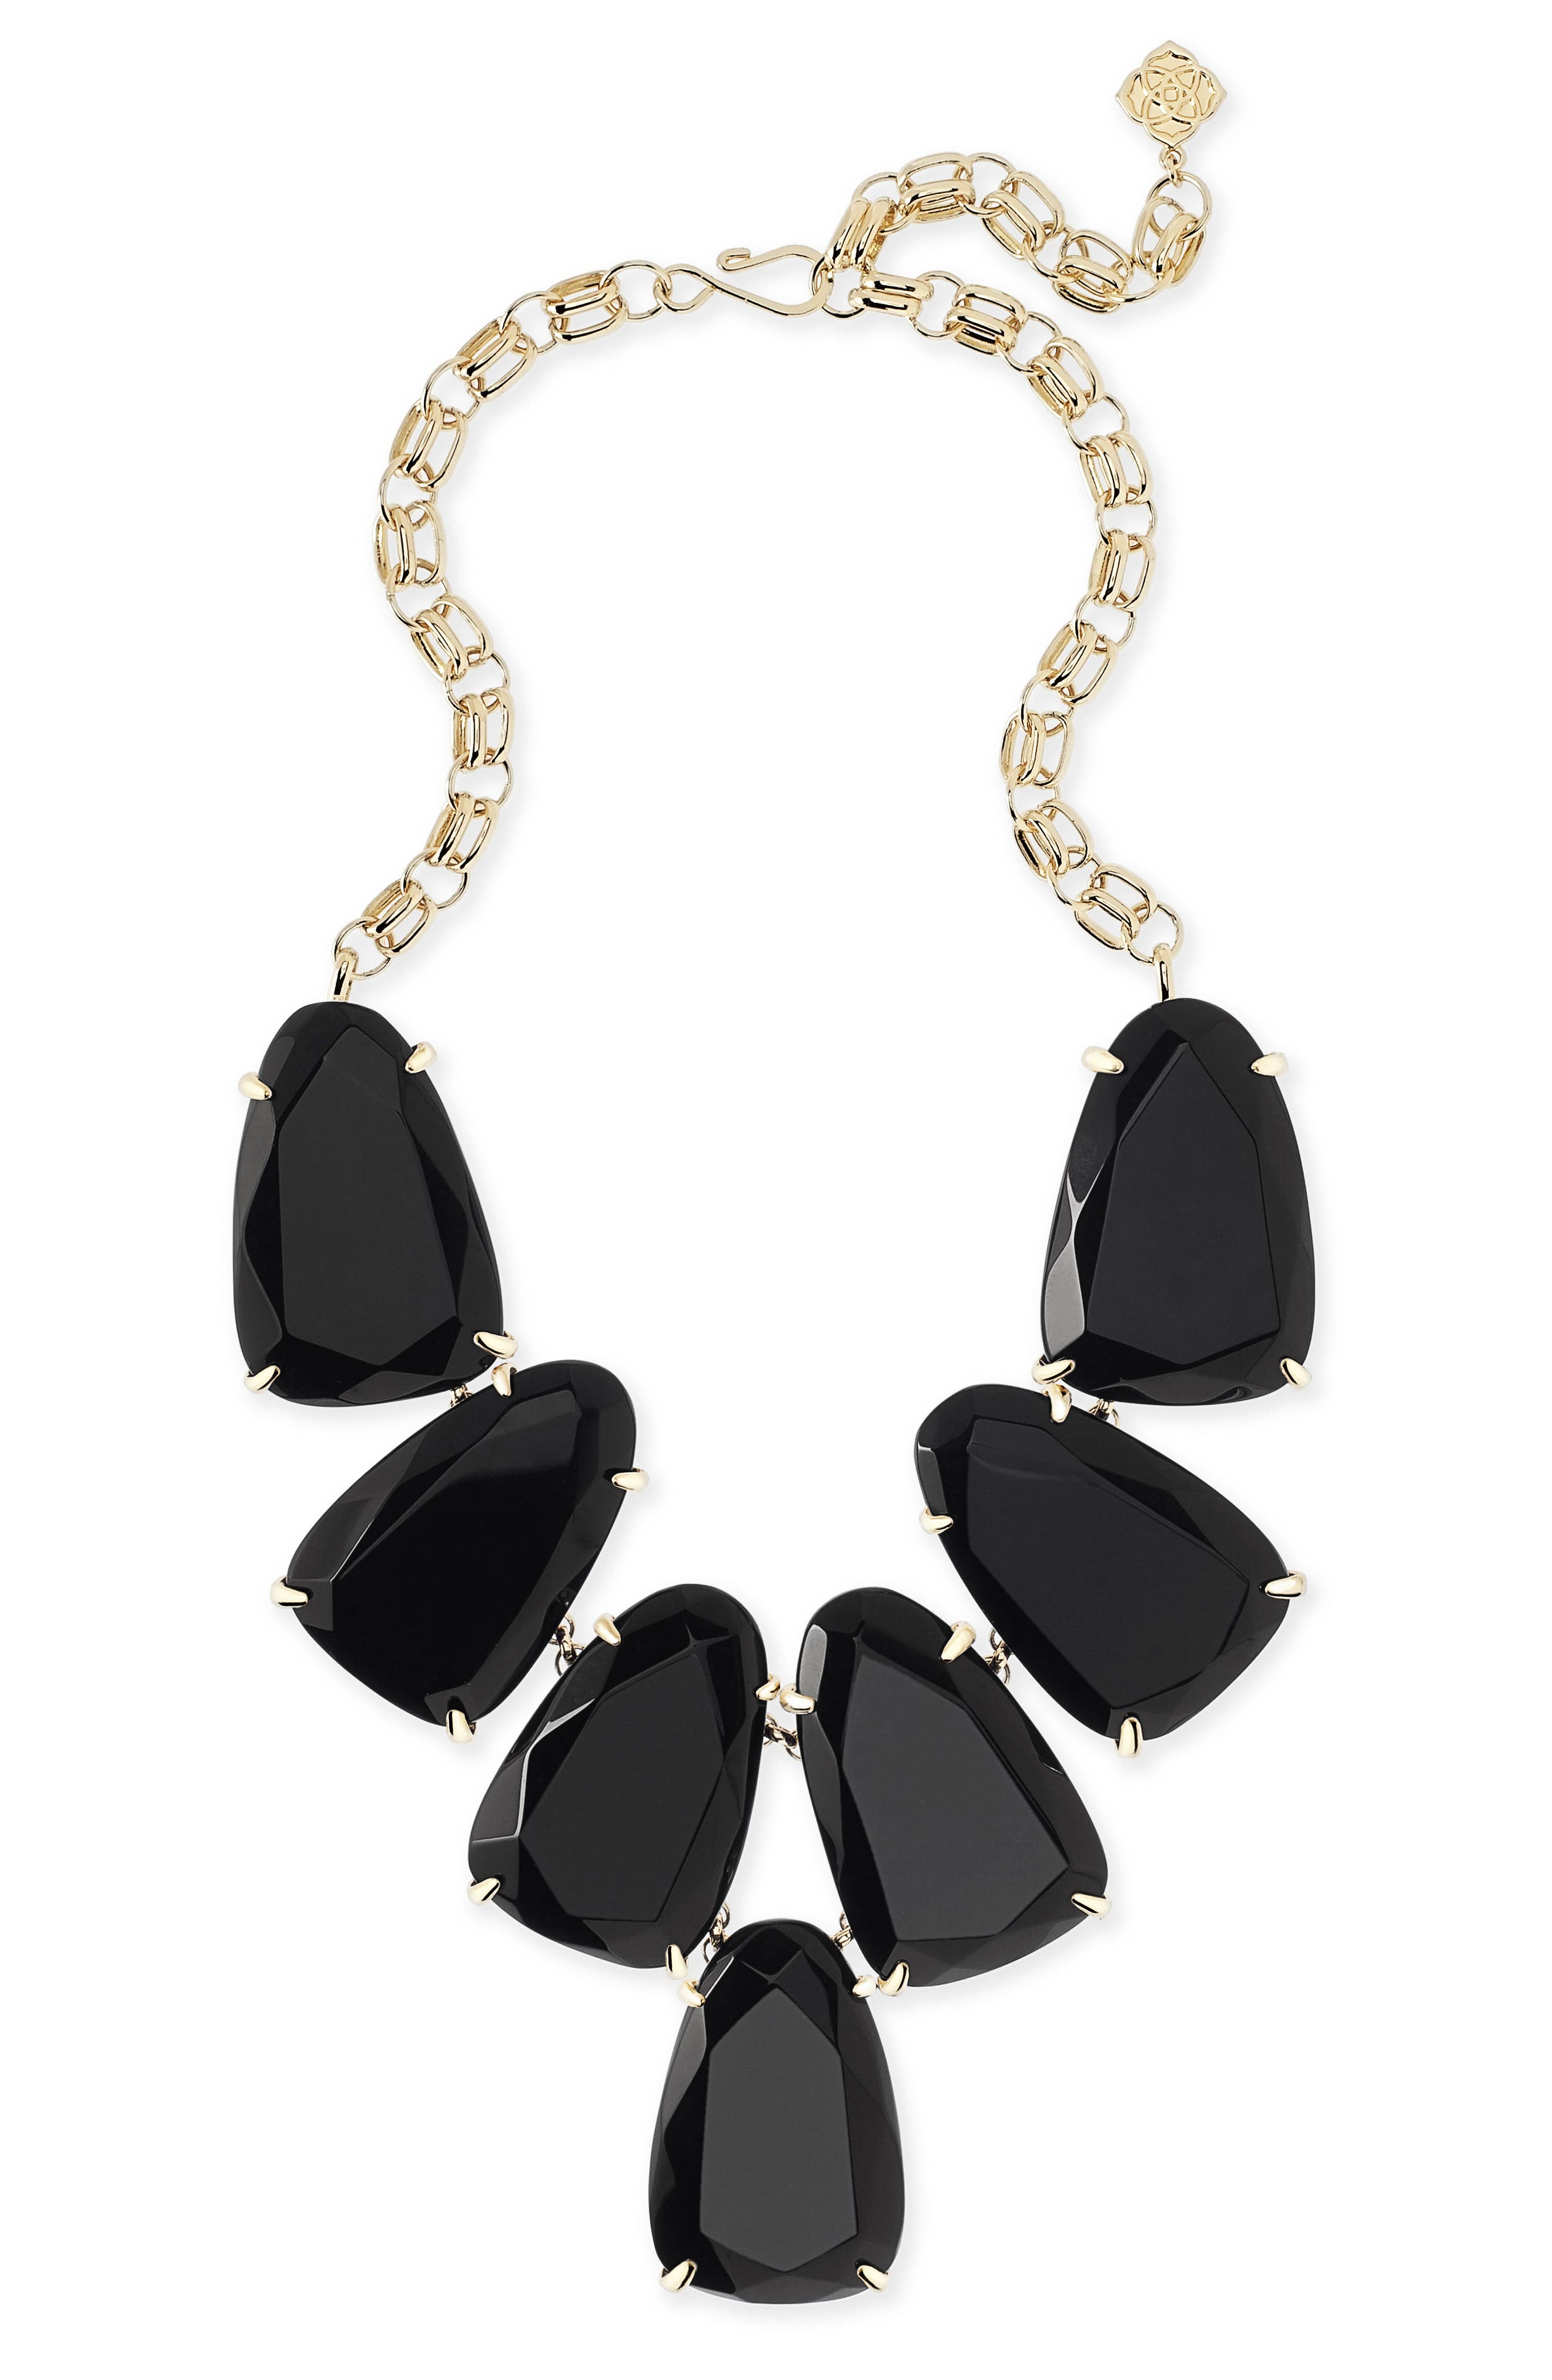 Harlow Necklace,                         Main,                         color, Black Onyx/ Gold